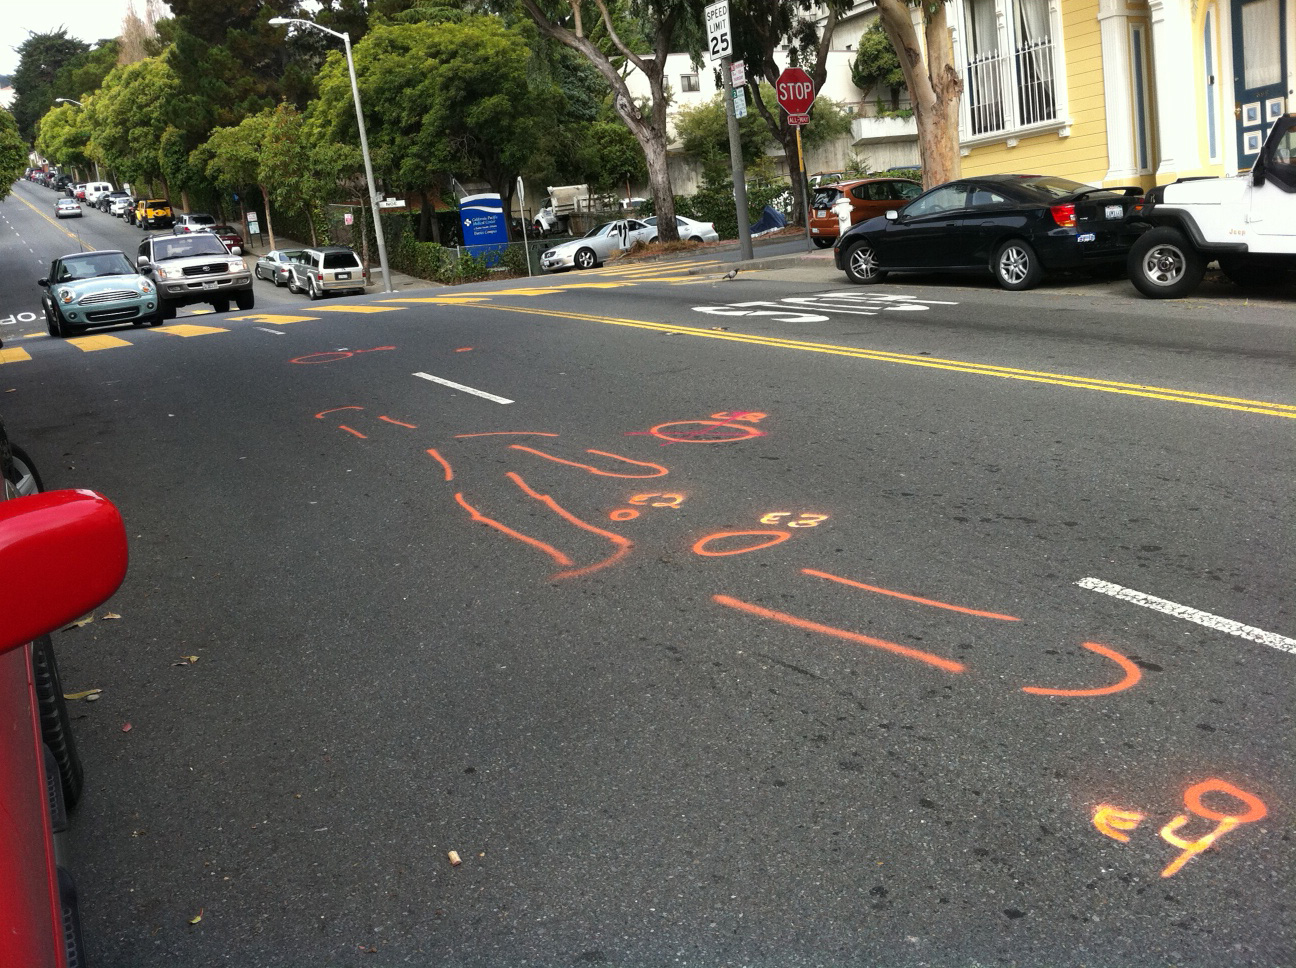 Police markings where William Cox died, September 7, 2011